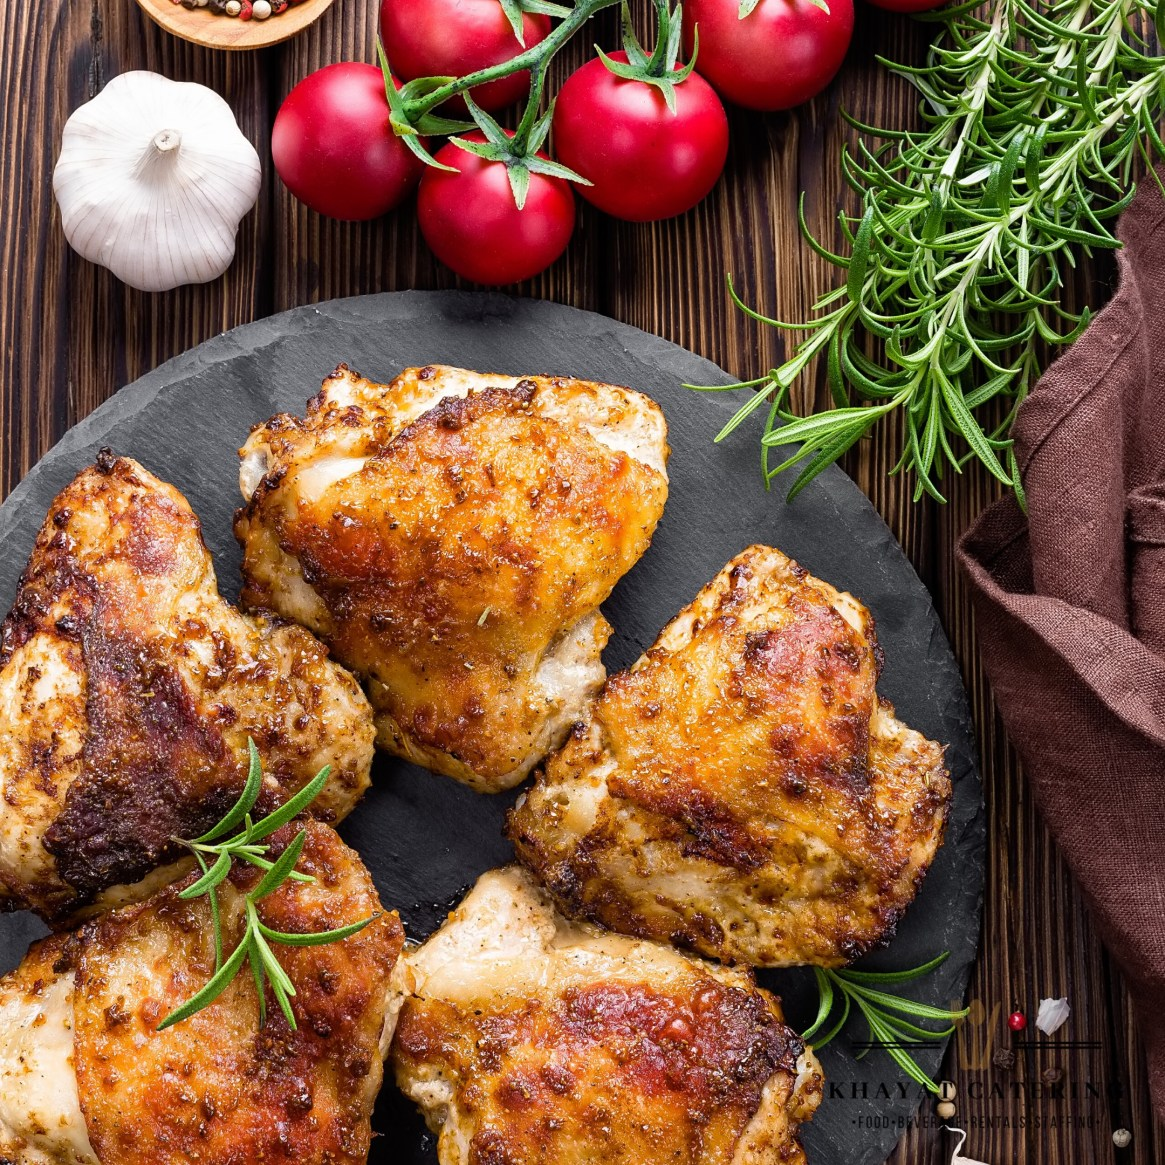 Khayat Catering baked chicken